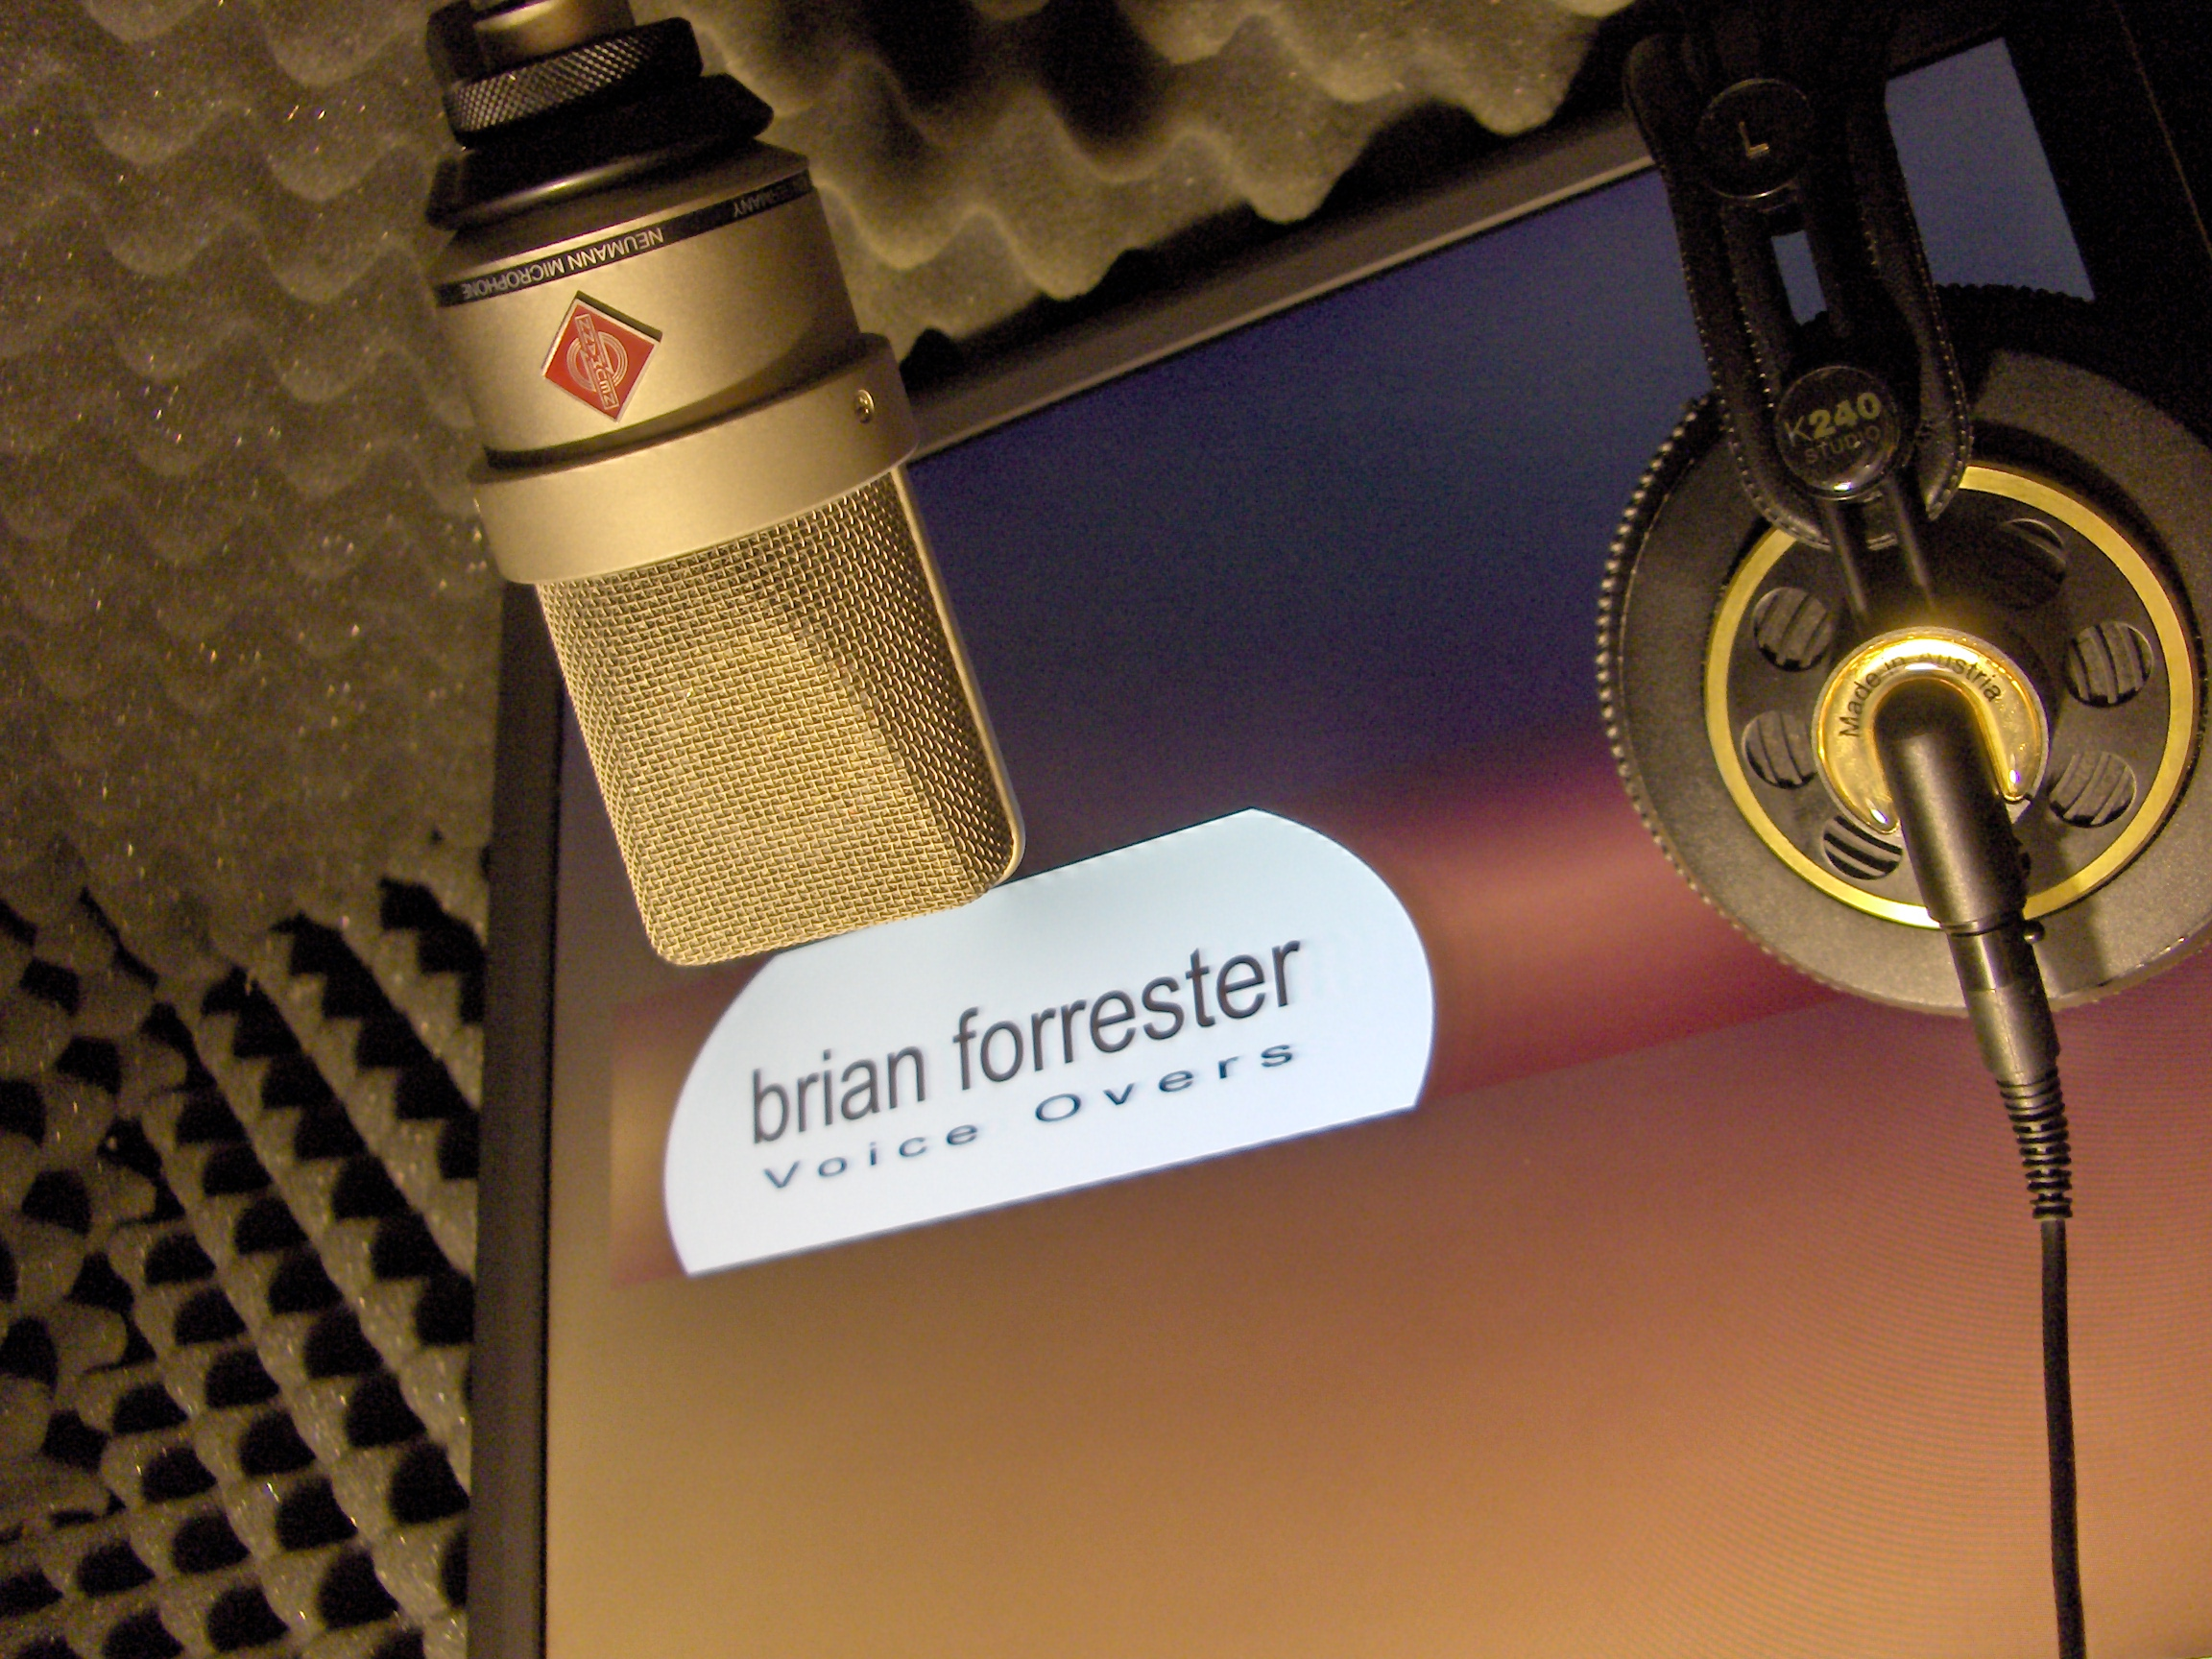 Brian Forrester